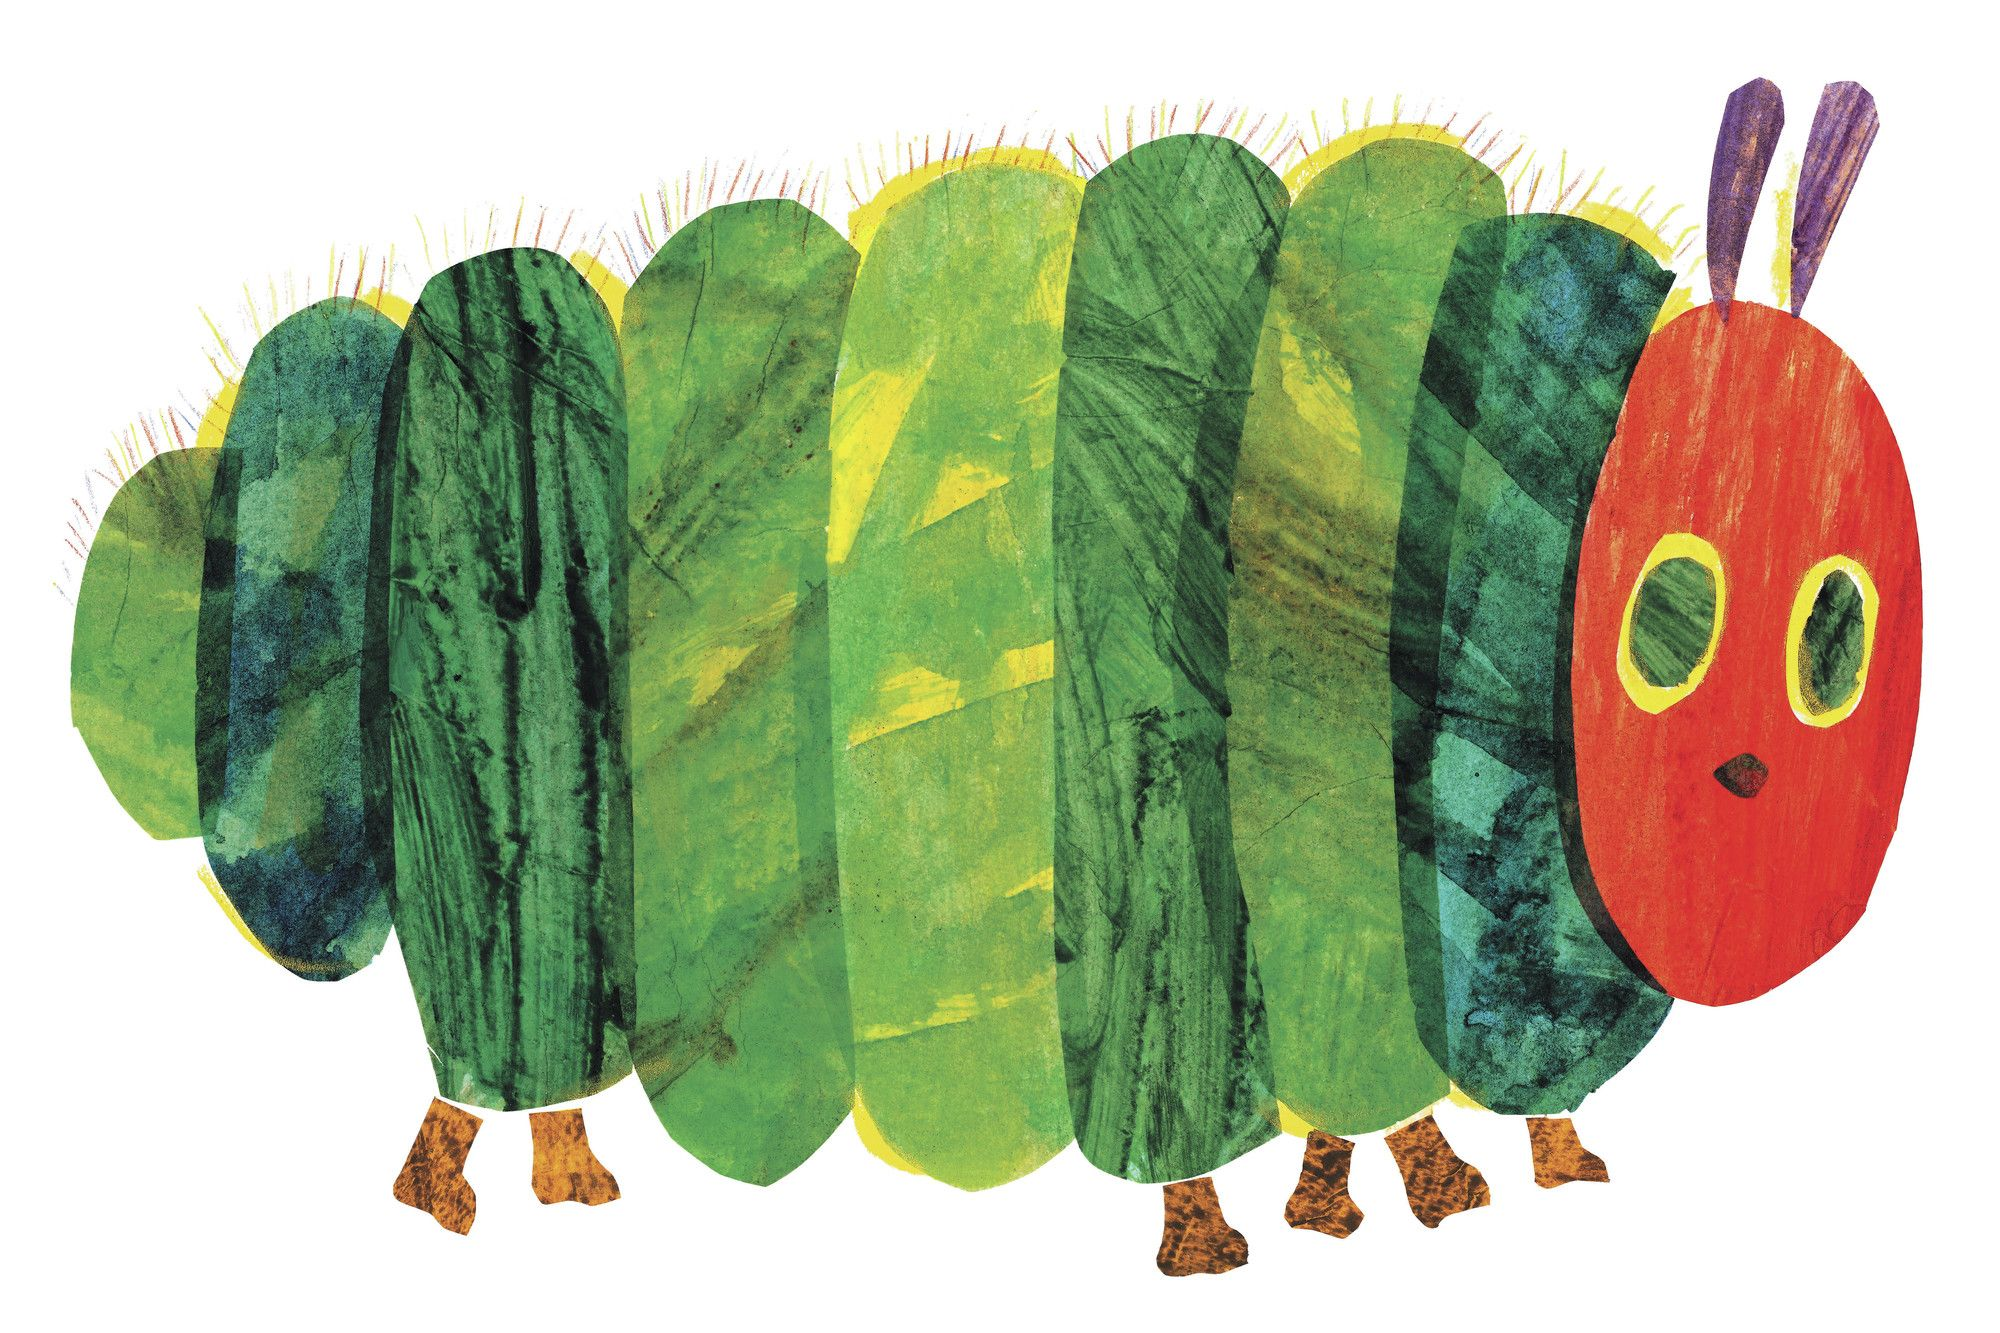 medium resolution of the very hungry caterpillar character caterpillar fat by eric carle painting print on wrapped canvas